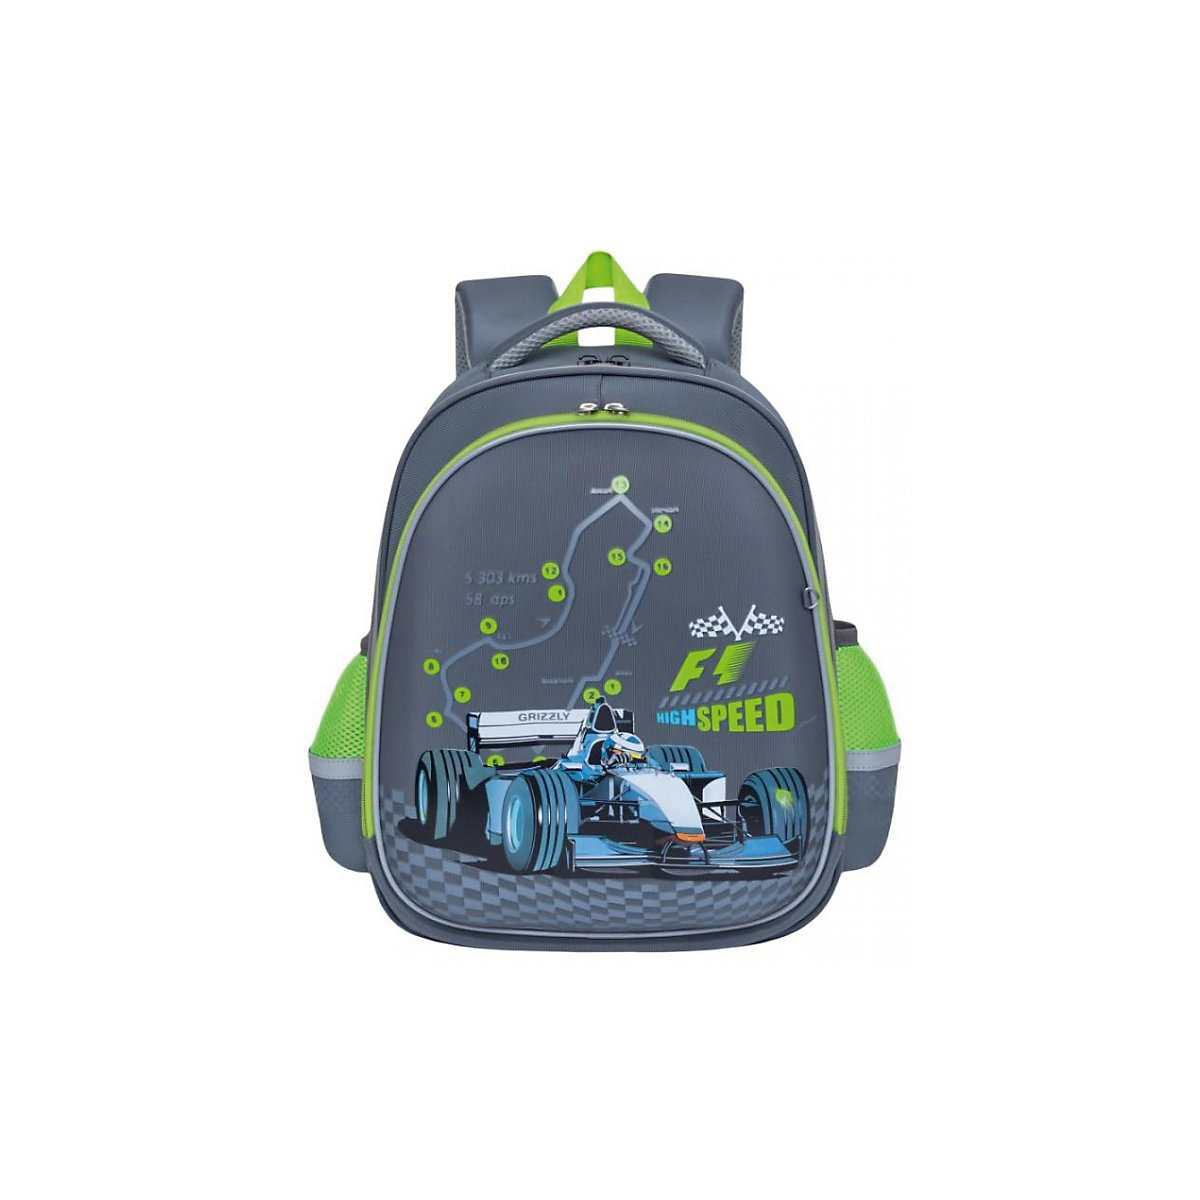 School Bags GRIZZLY 8317214 schoolbag backpack orthopedic bag for boy and girl animals flowers tiding 14 laptop backpack boy school bag genuine leather book bag casual rucksack day pack 3072